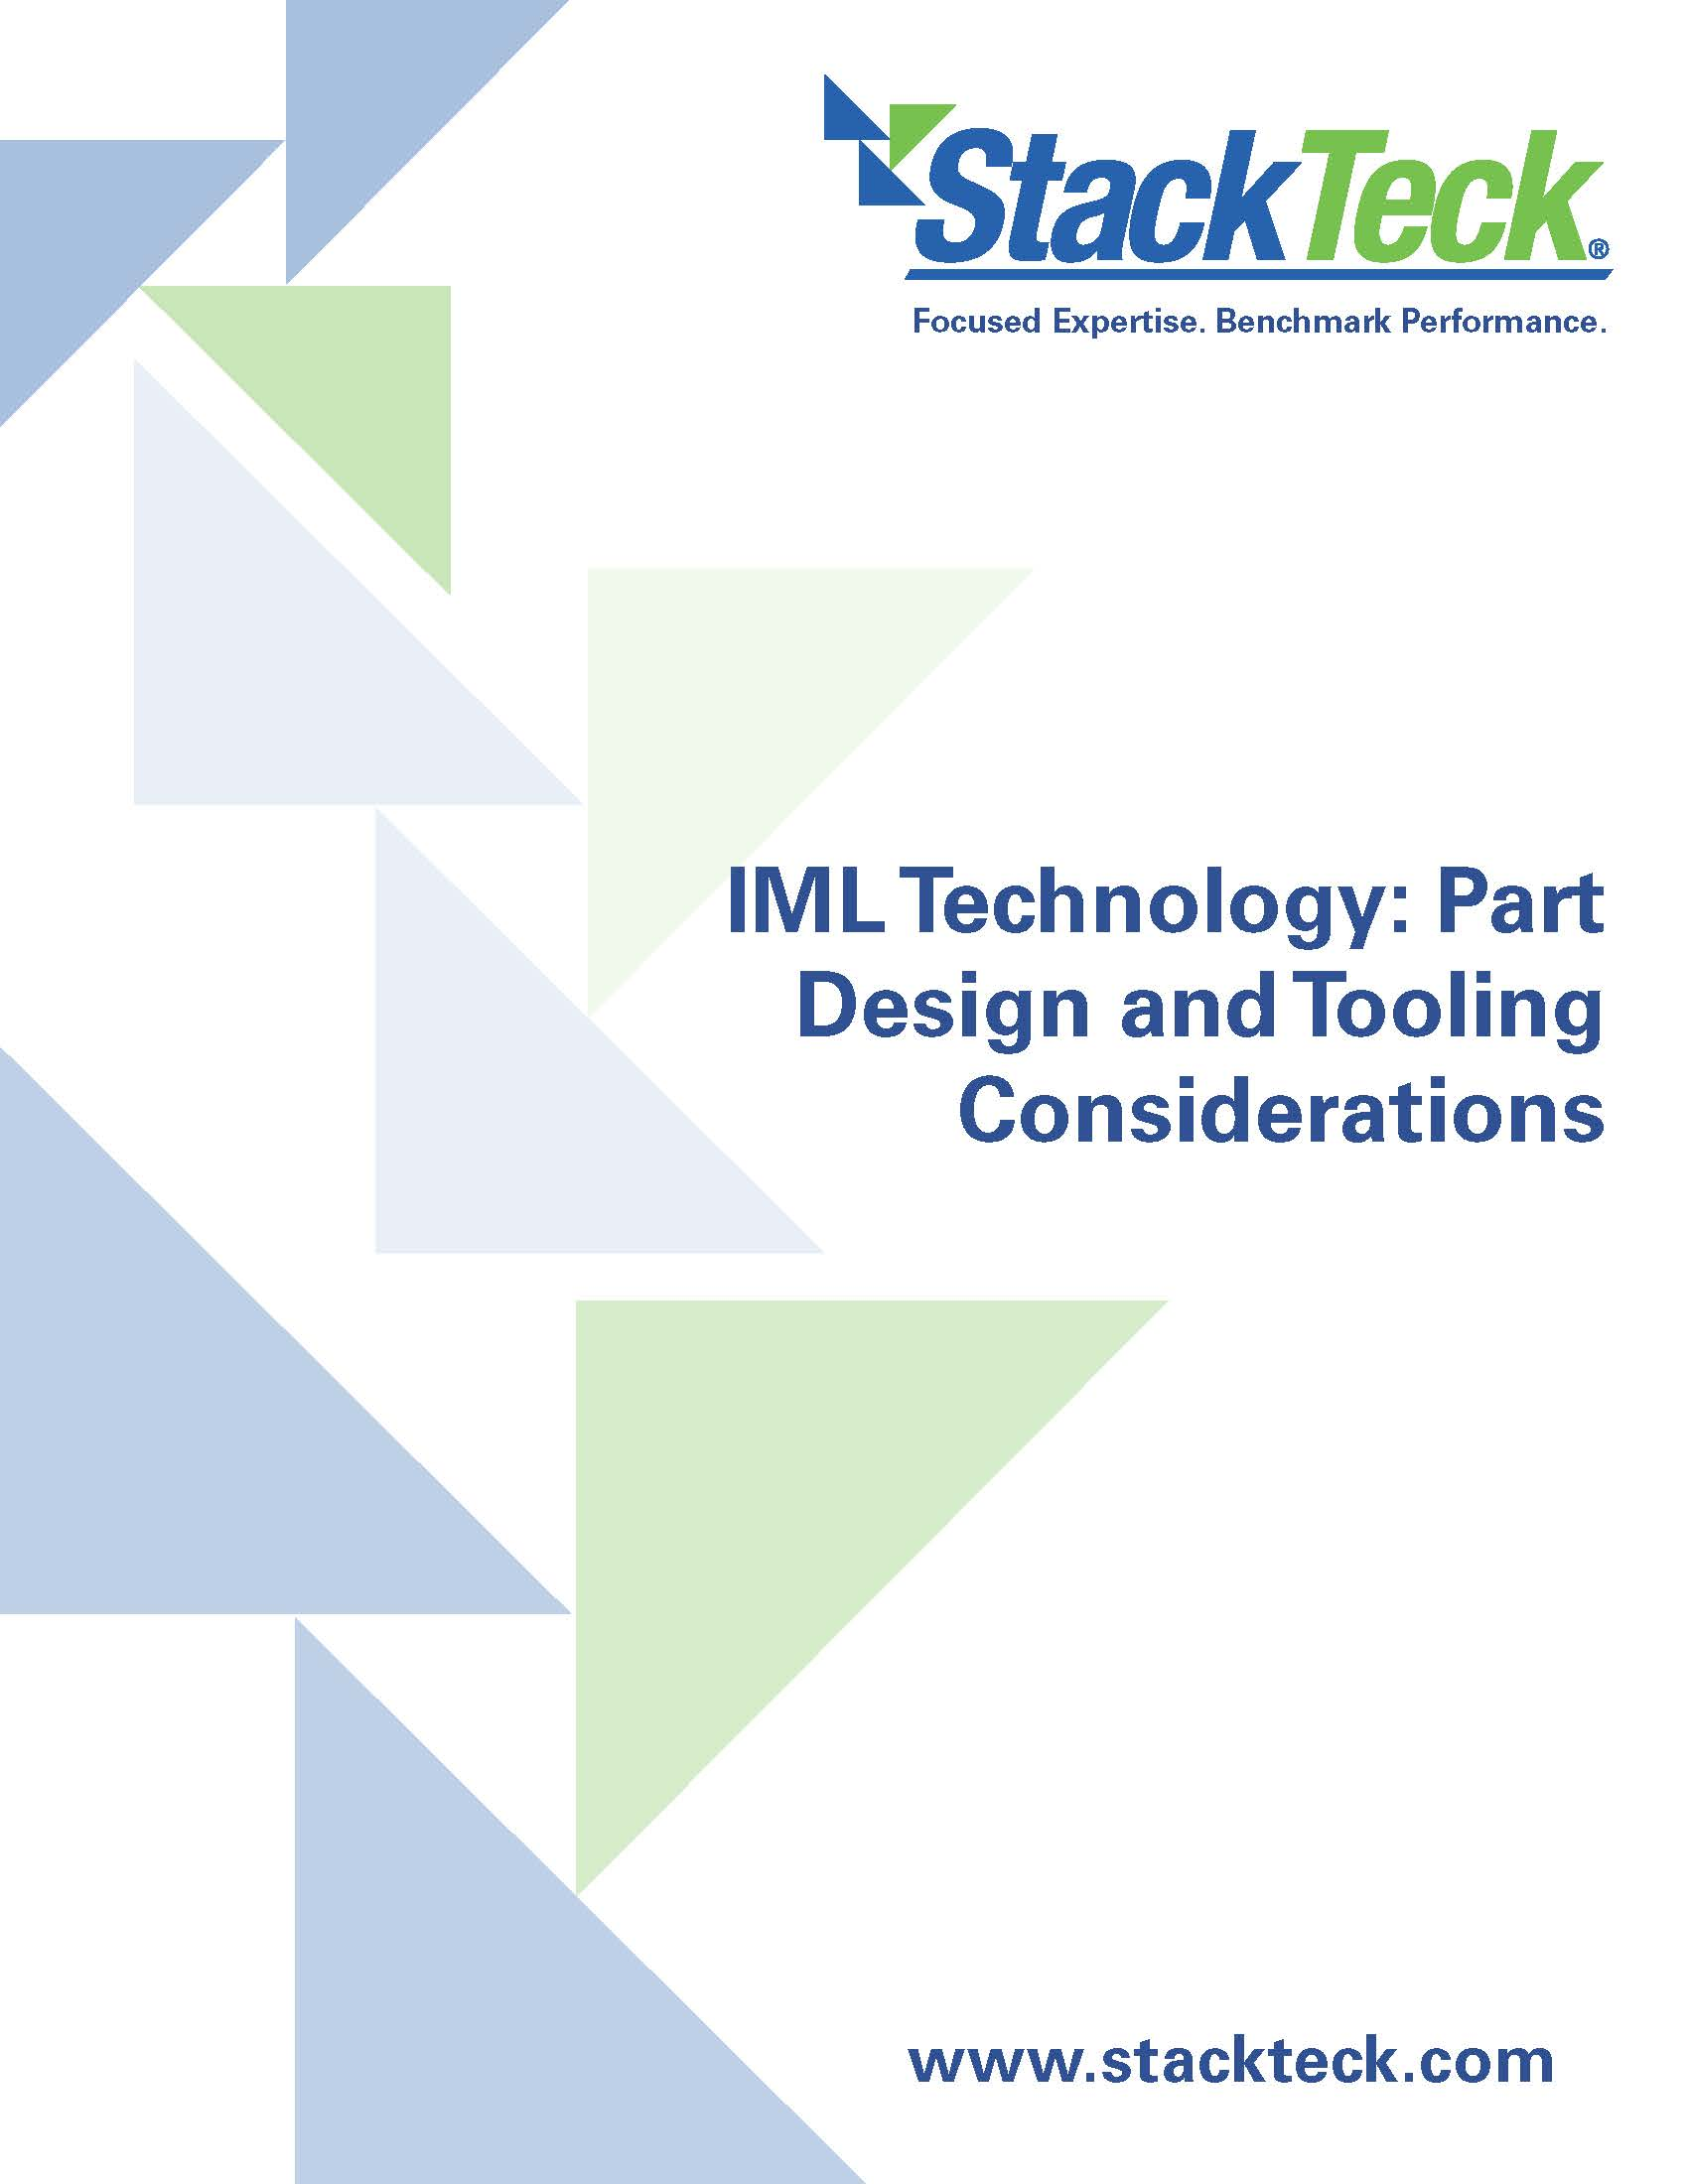 IML Technology-Part Design and Tooling Considerations_Page_01